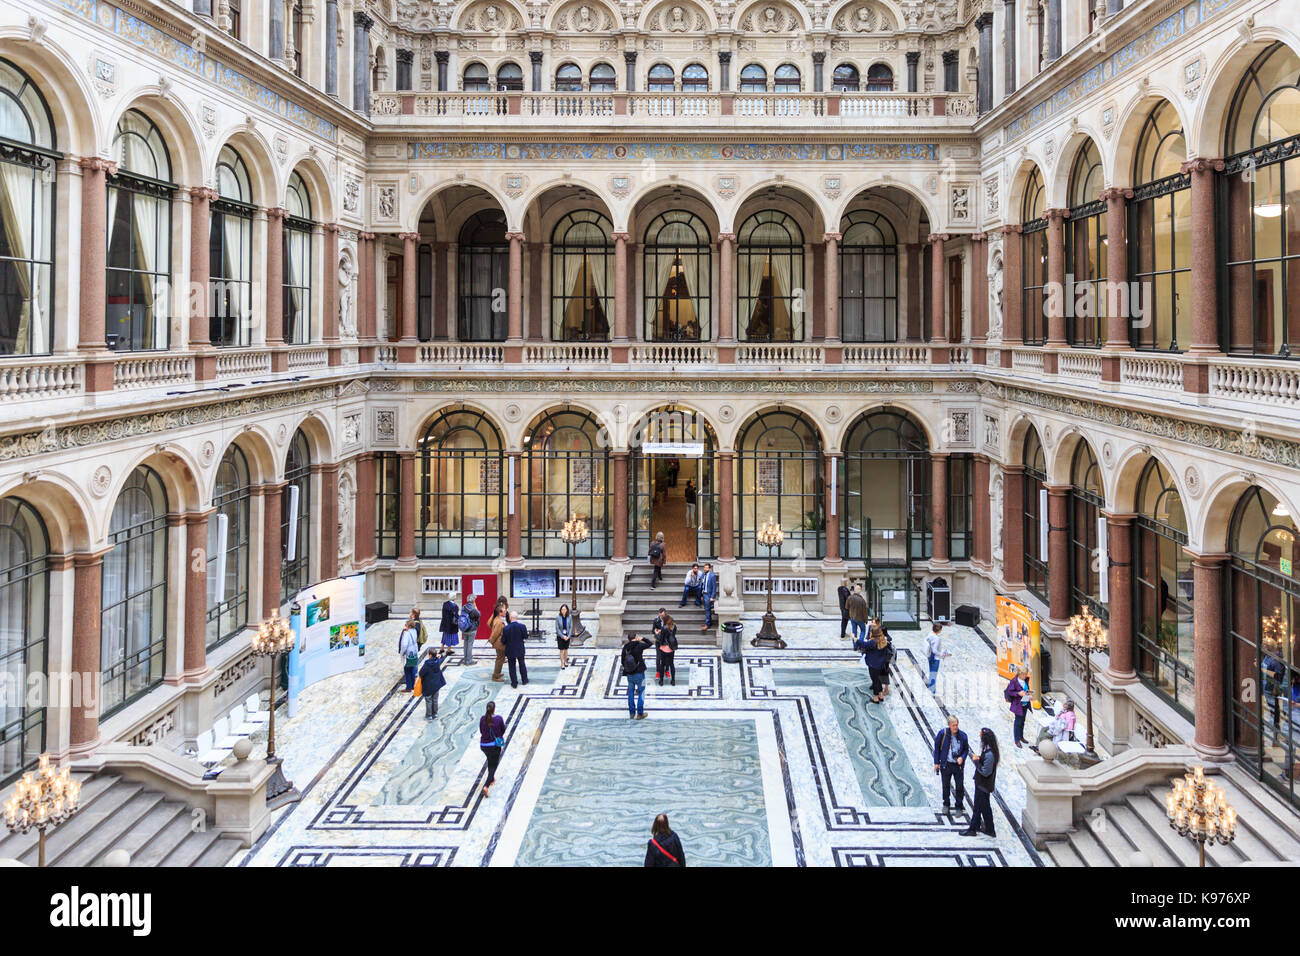 Uk court interior stock photos uk court interior stock images alamy - British foreign commonwealth office ...